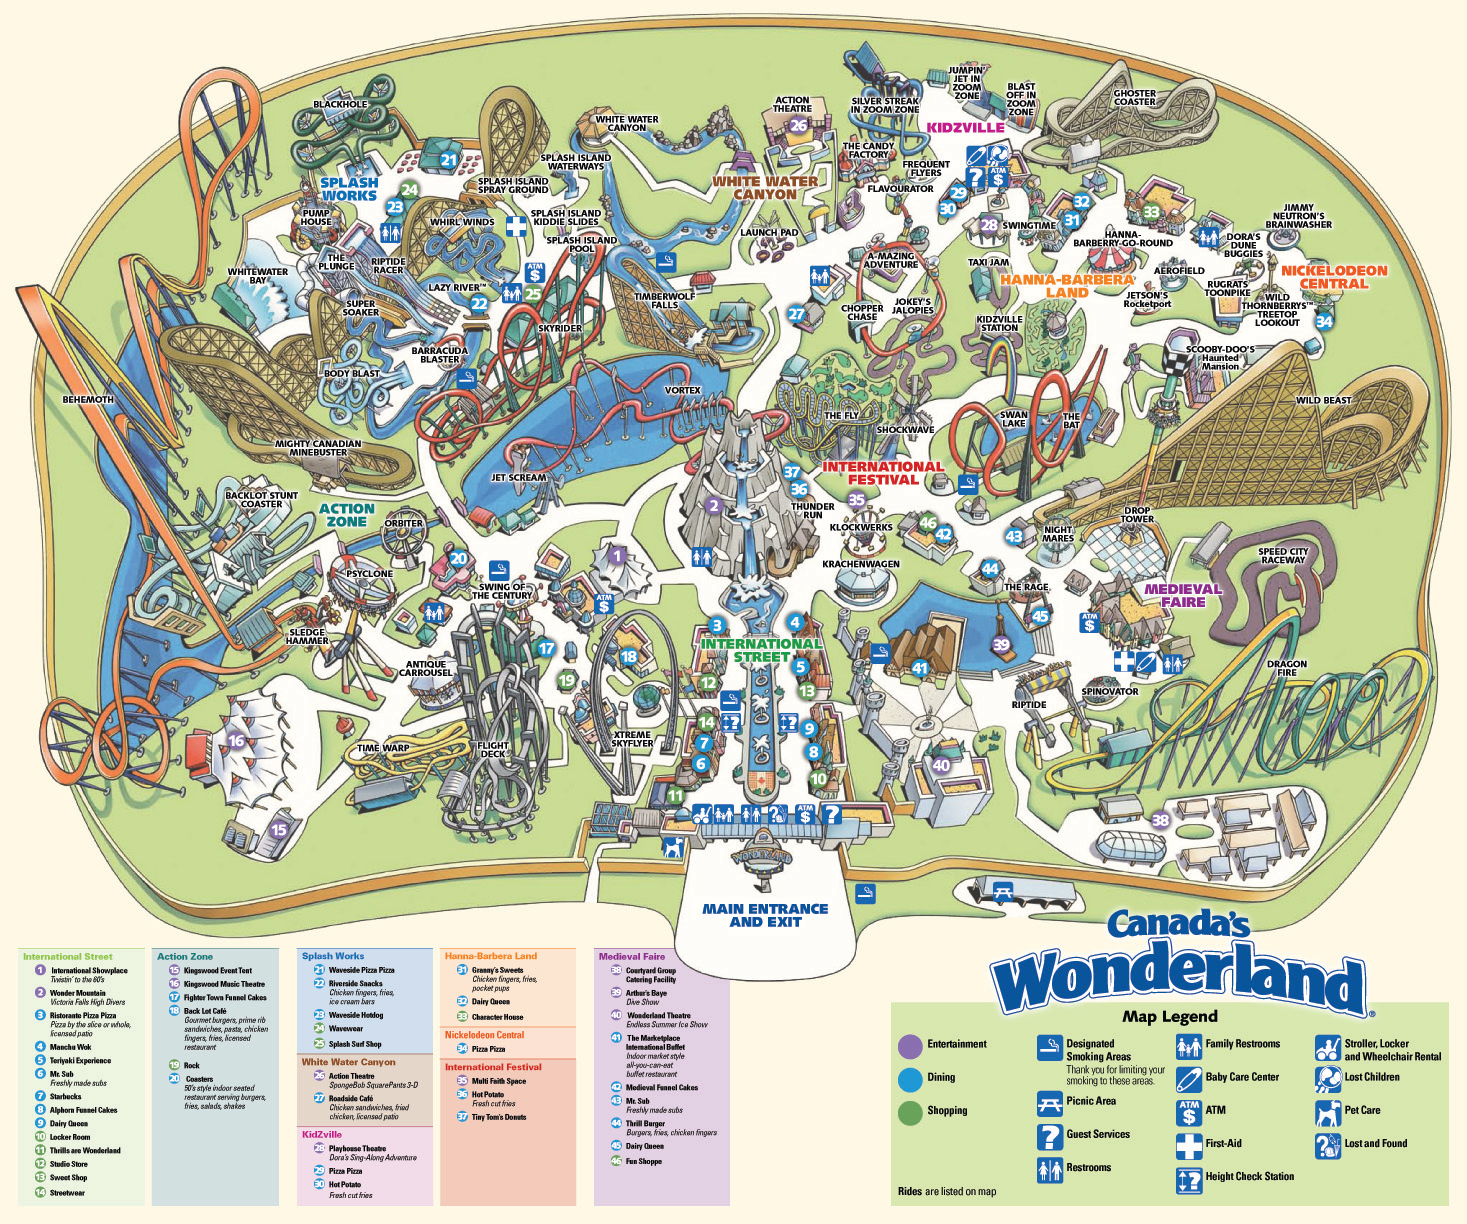 Canada Wonderland Map 2015 Canada's Wonderland Historical Maps   CP Food Blog